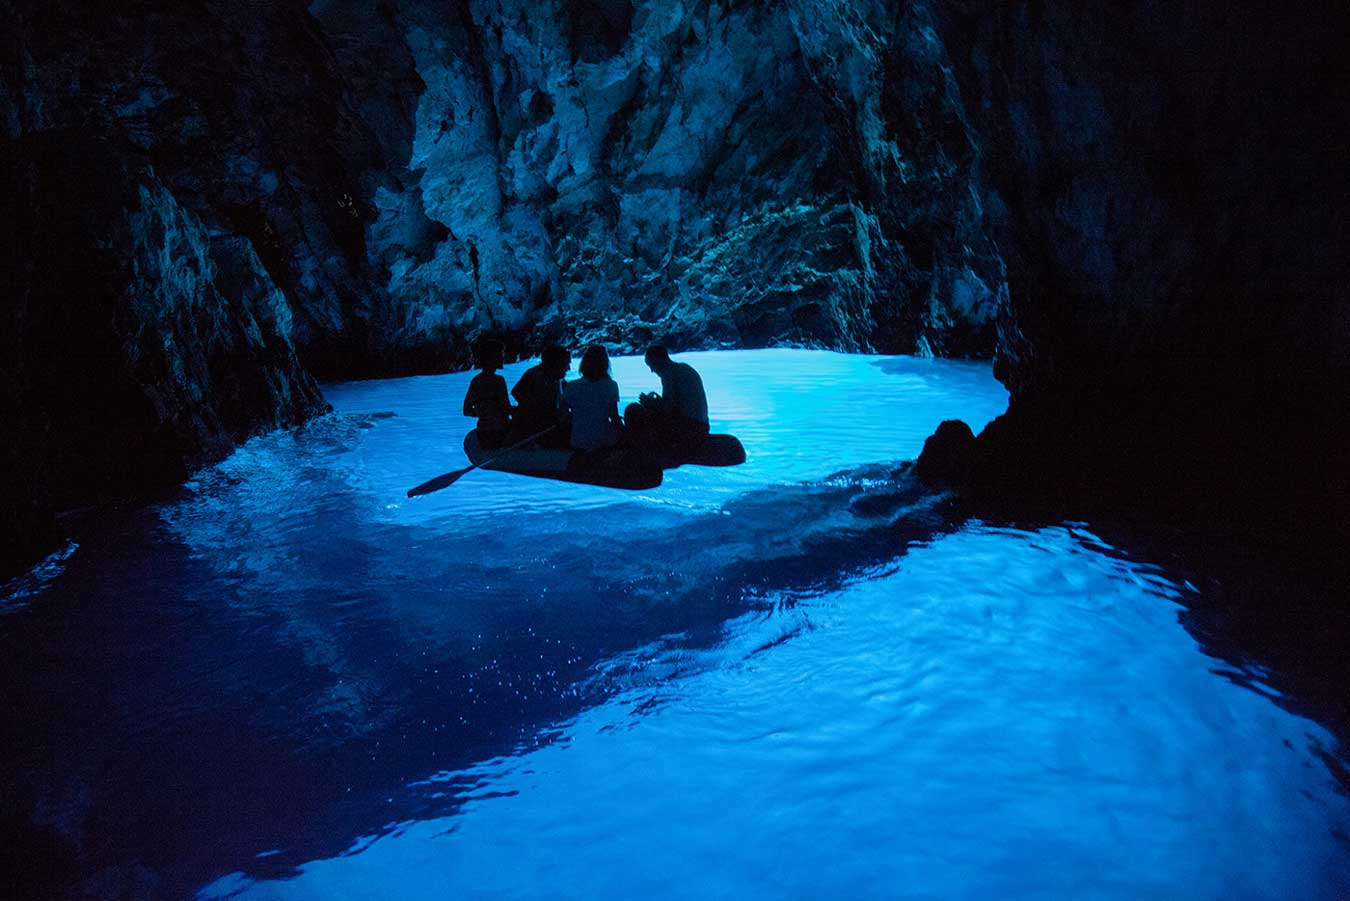 Blue cave with water illuminated from the bottom.